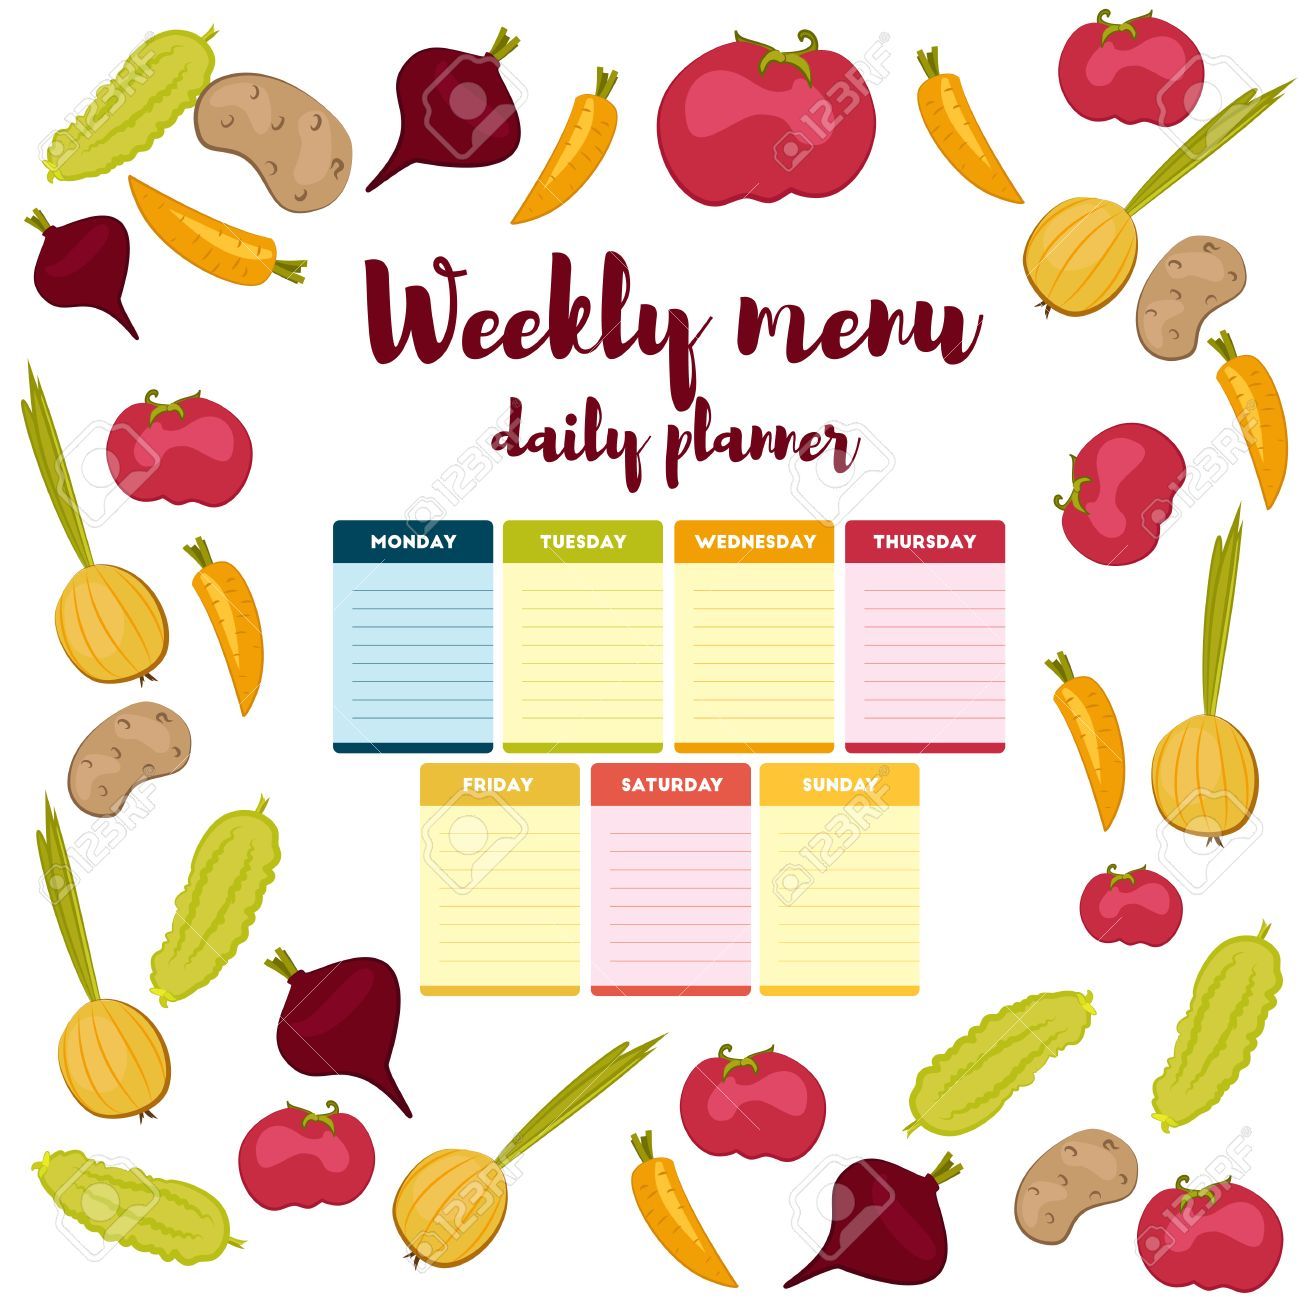 paper note week healthy eating daily routine breakfast lunch